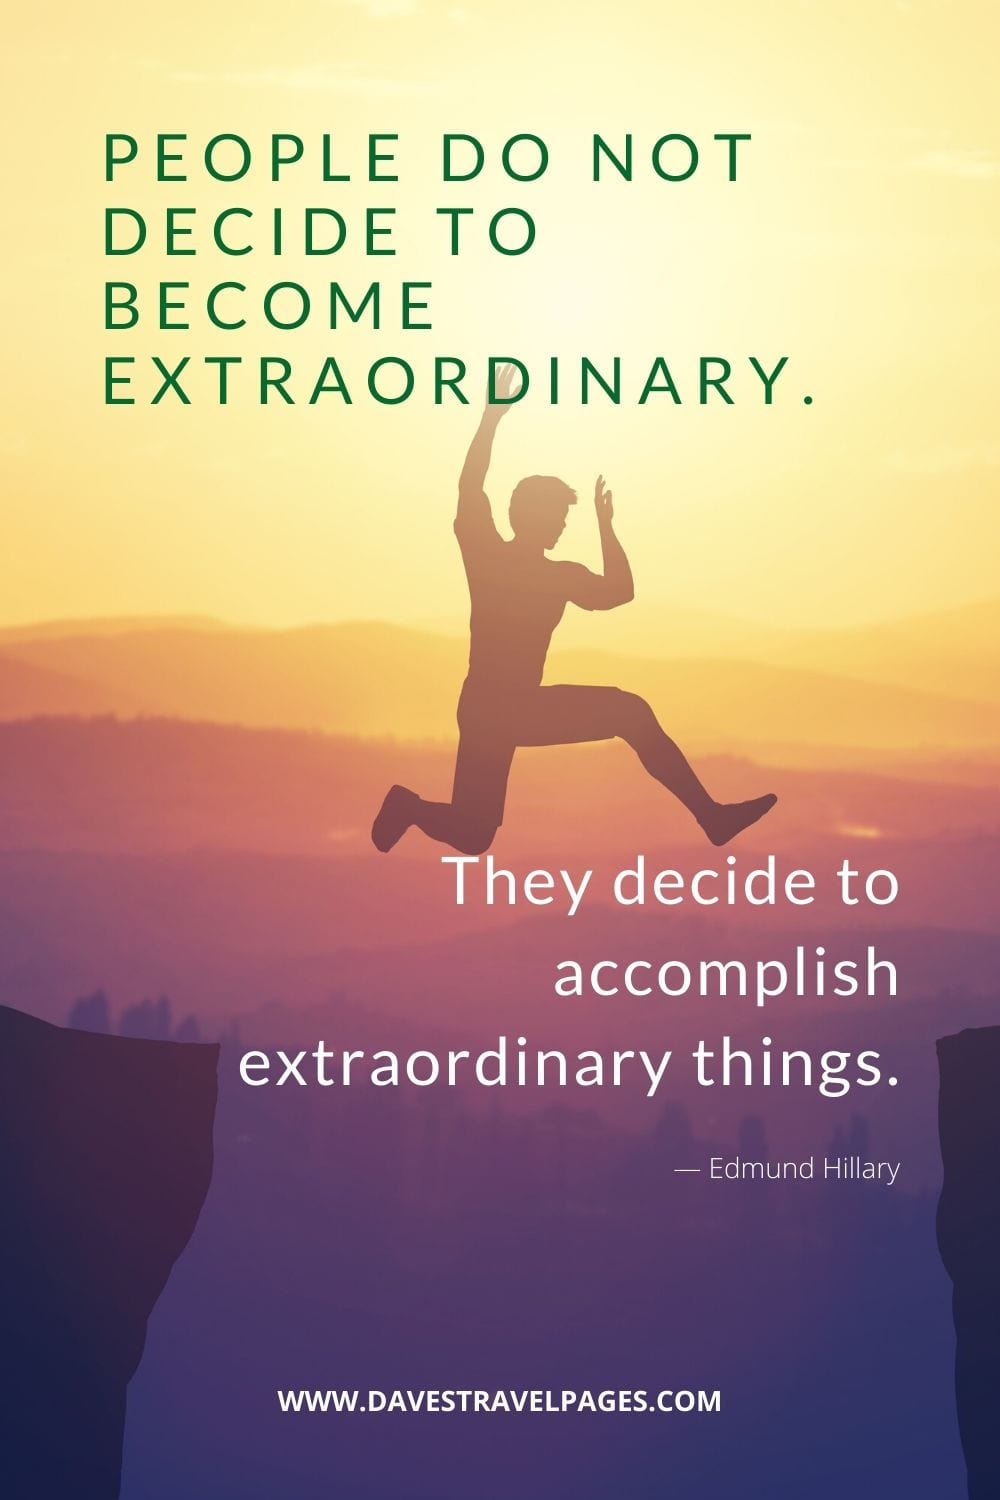 """""People do not decide to become extraordinary. They decide to accomplish extraordinary things."" ― Edmund Hillary Inspirational Quote"